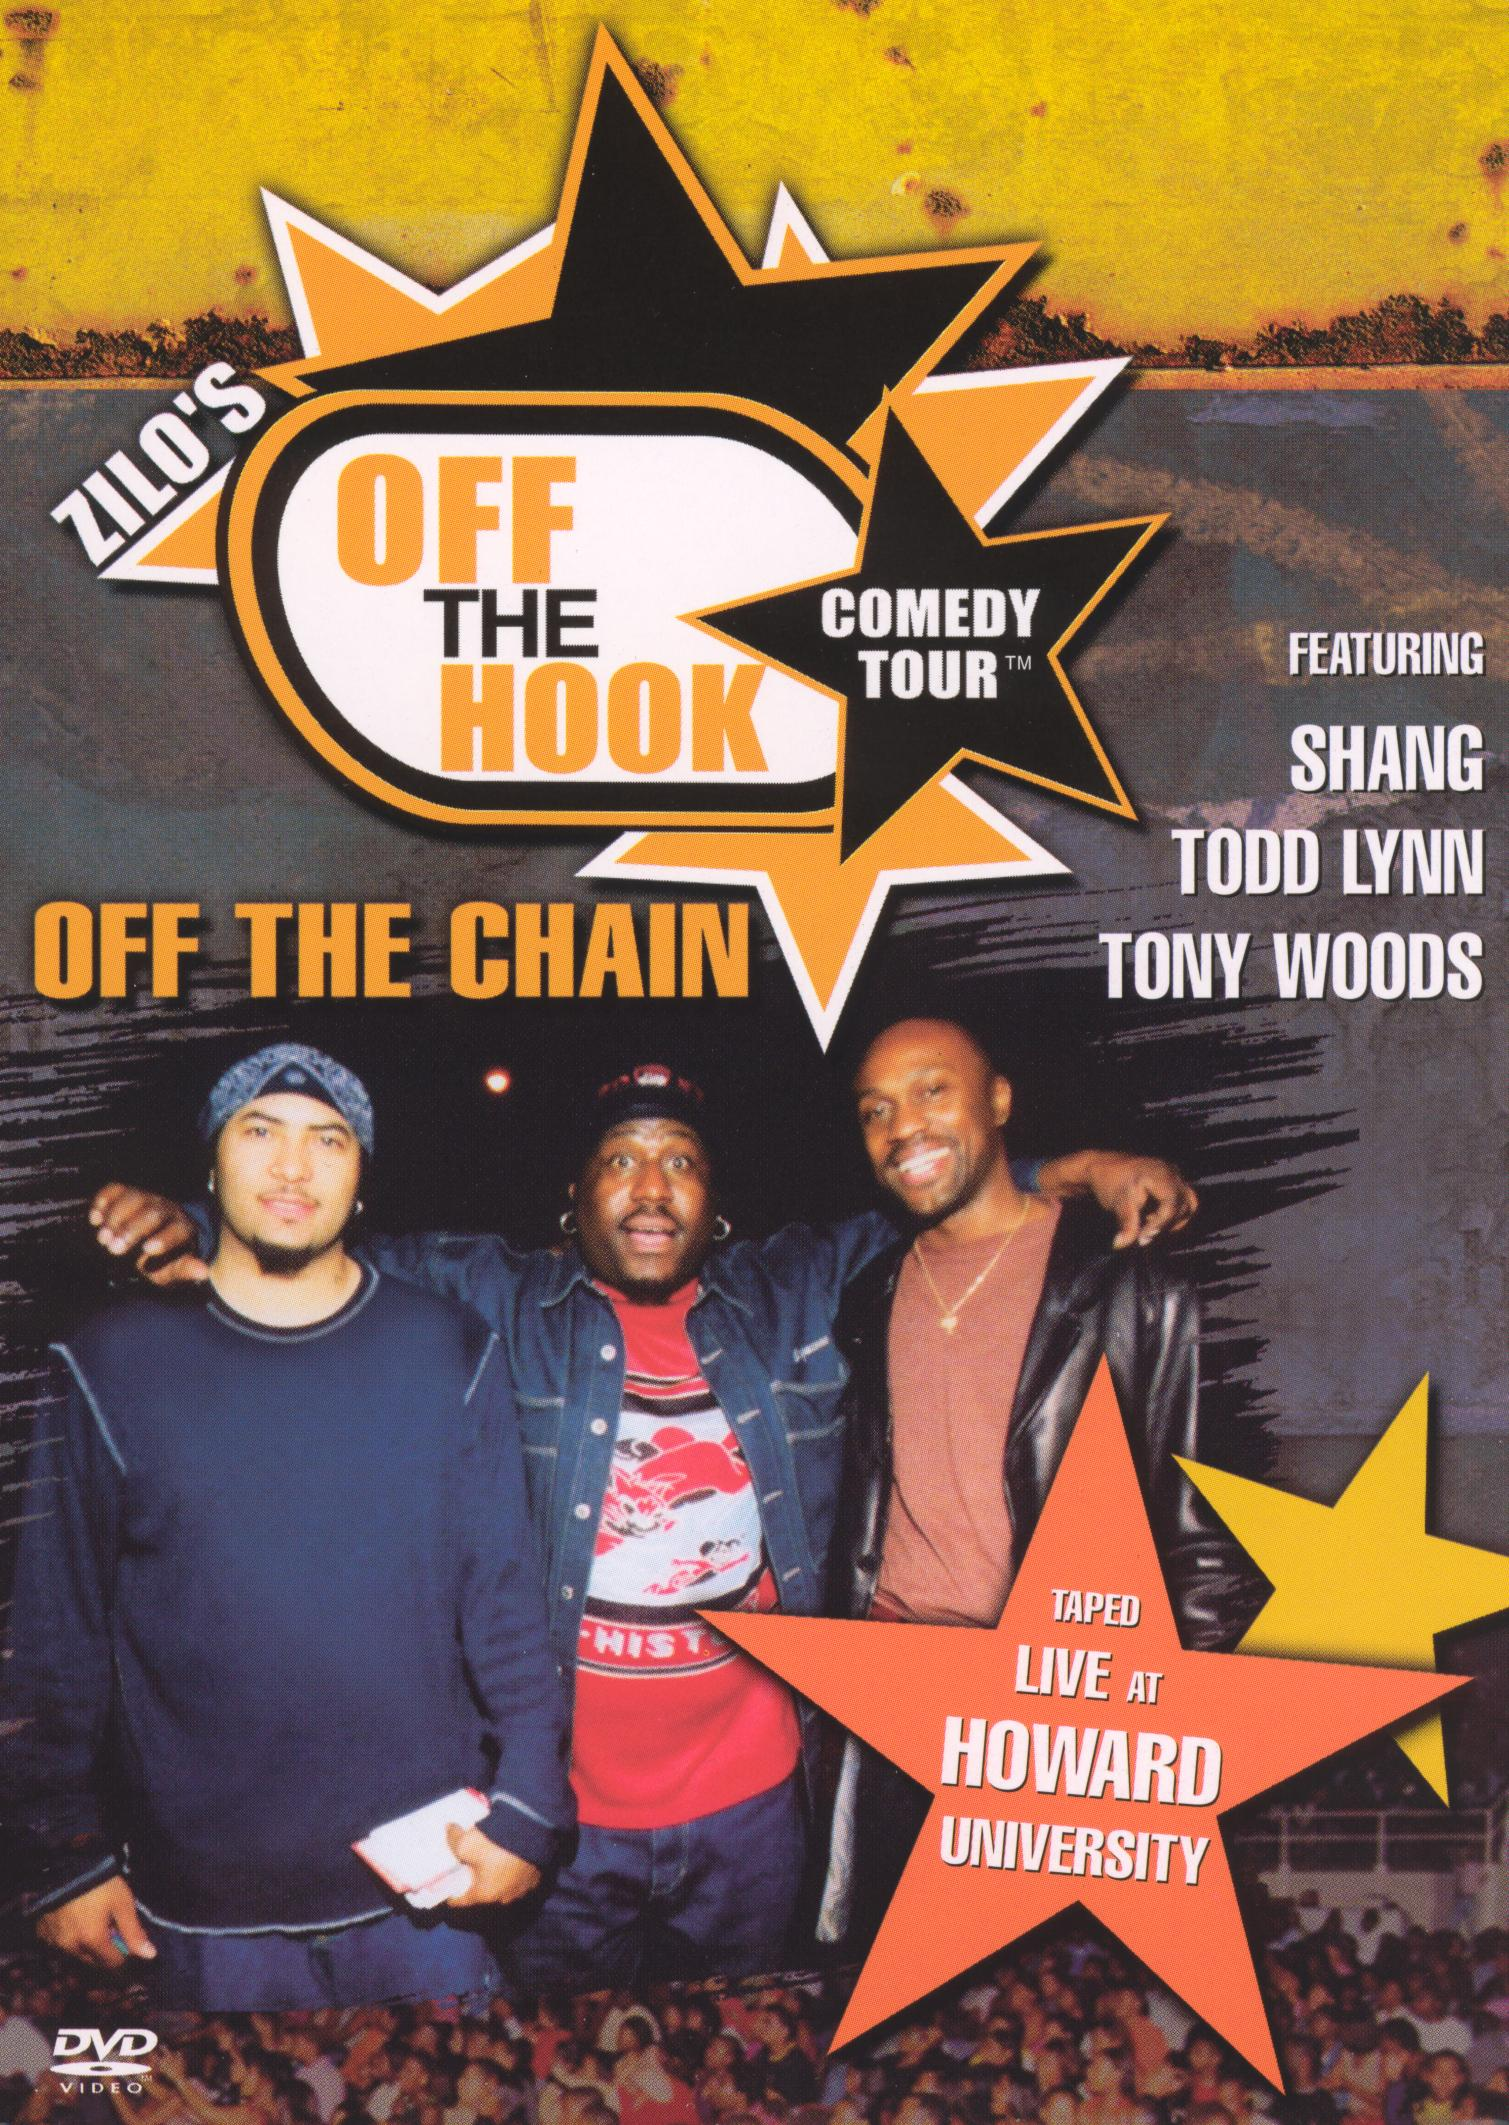 Off the Hook Comedy Tour, Vol. 1: Off the Chain